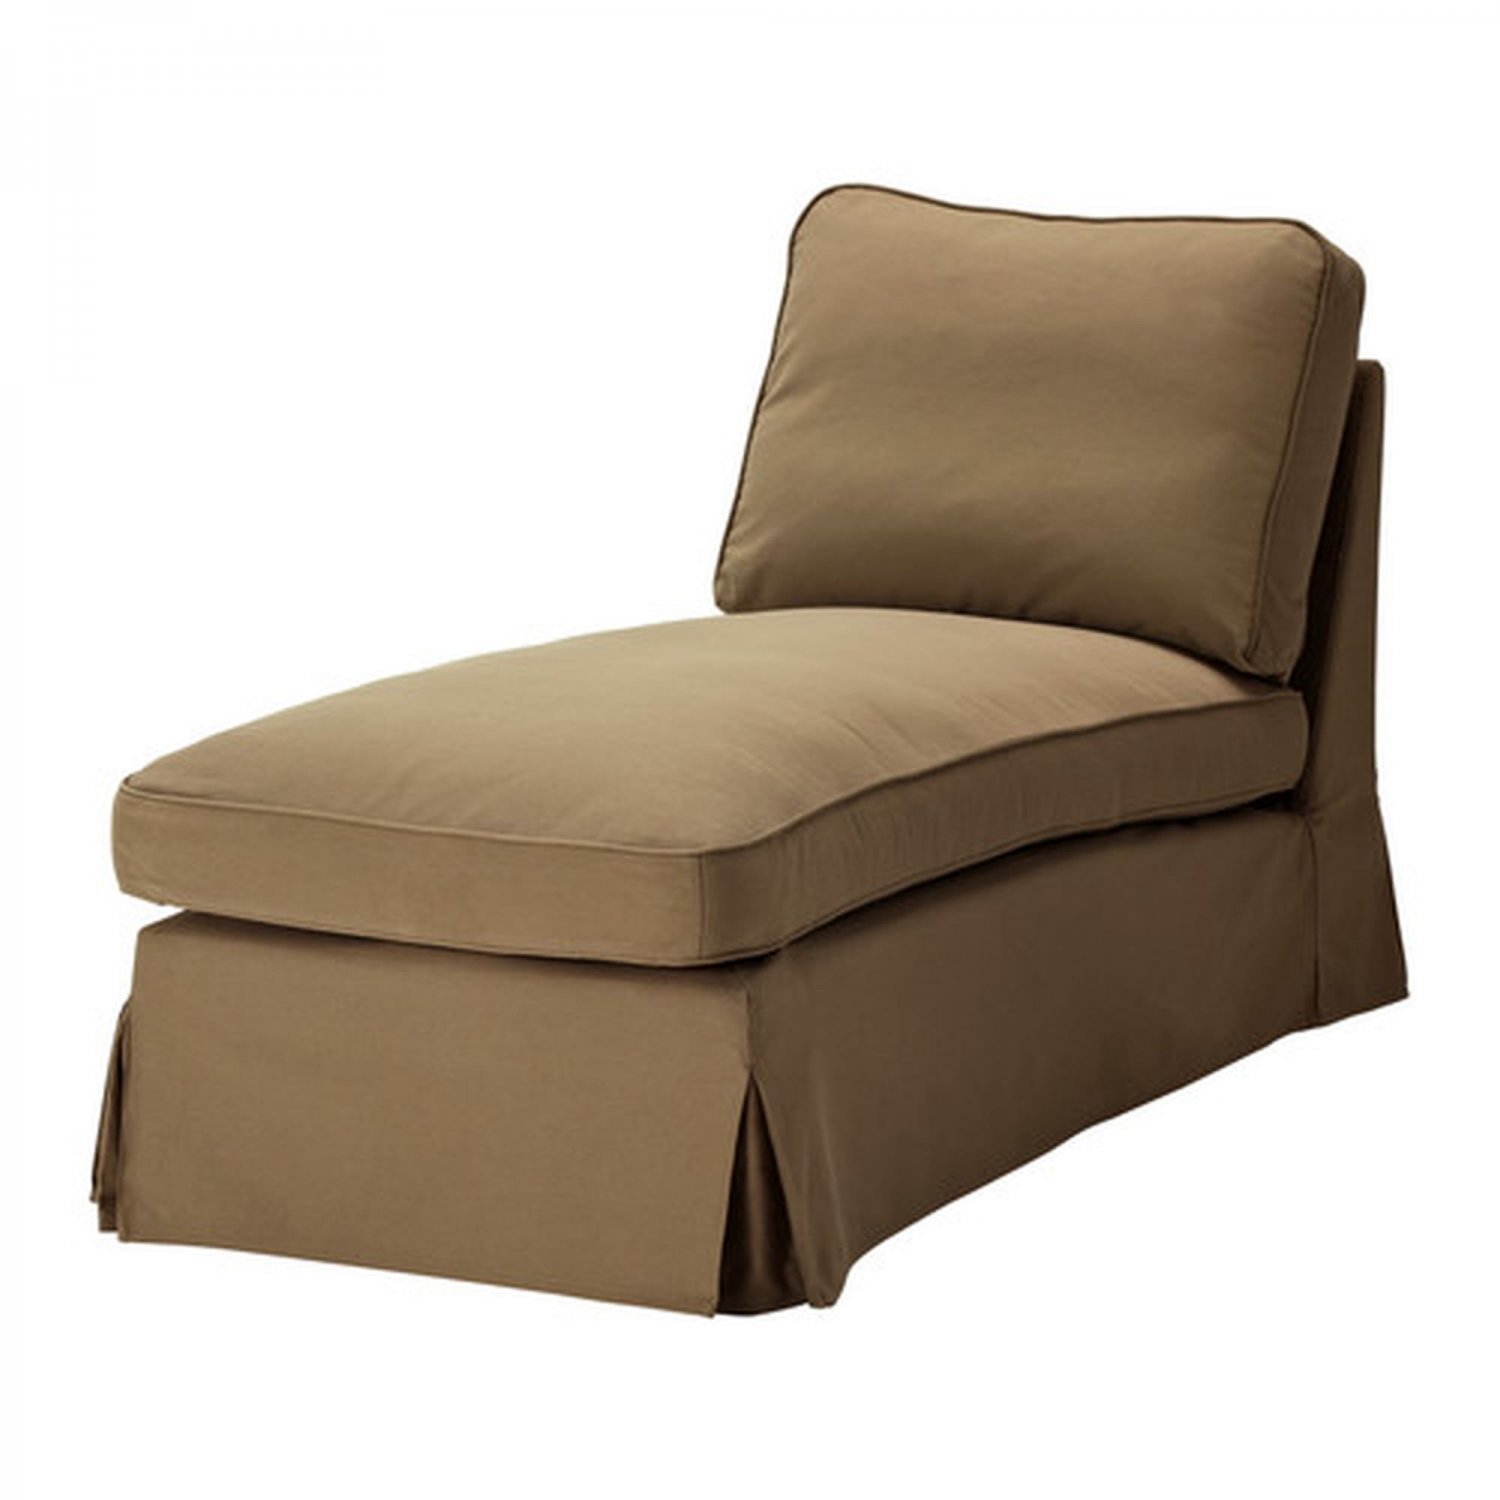 ikea ektorp free standing chaise cover slipcover idemo light brown. Black Bedroom Furniture Sets. Home Design Ideas